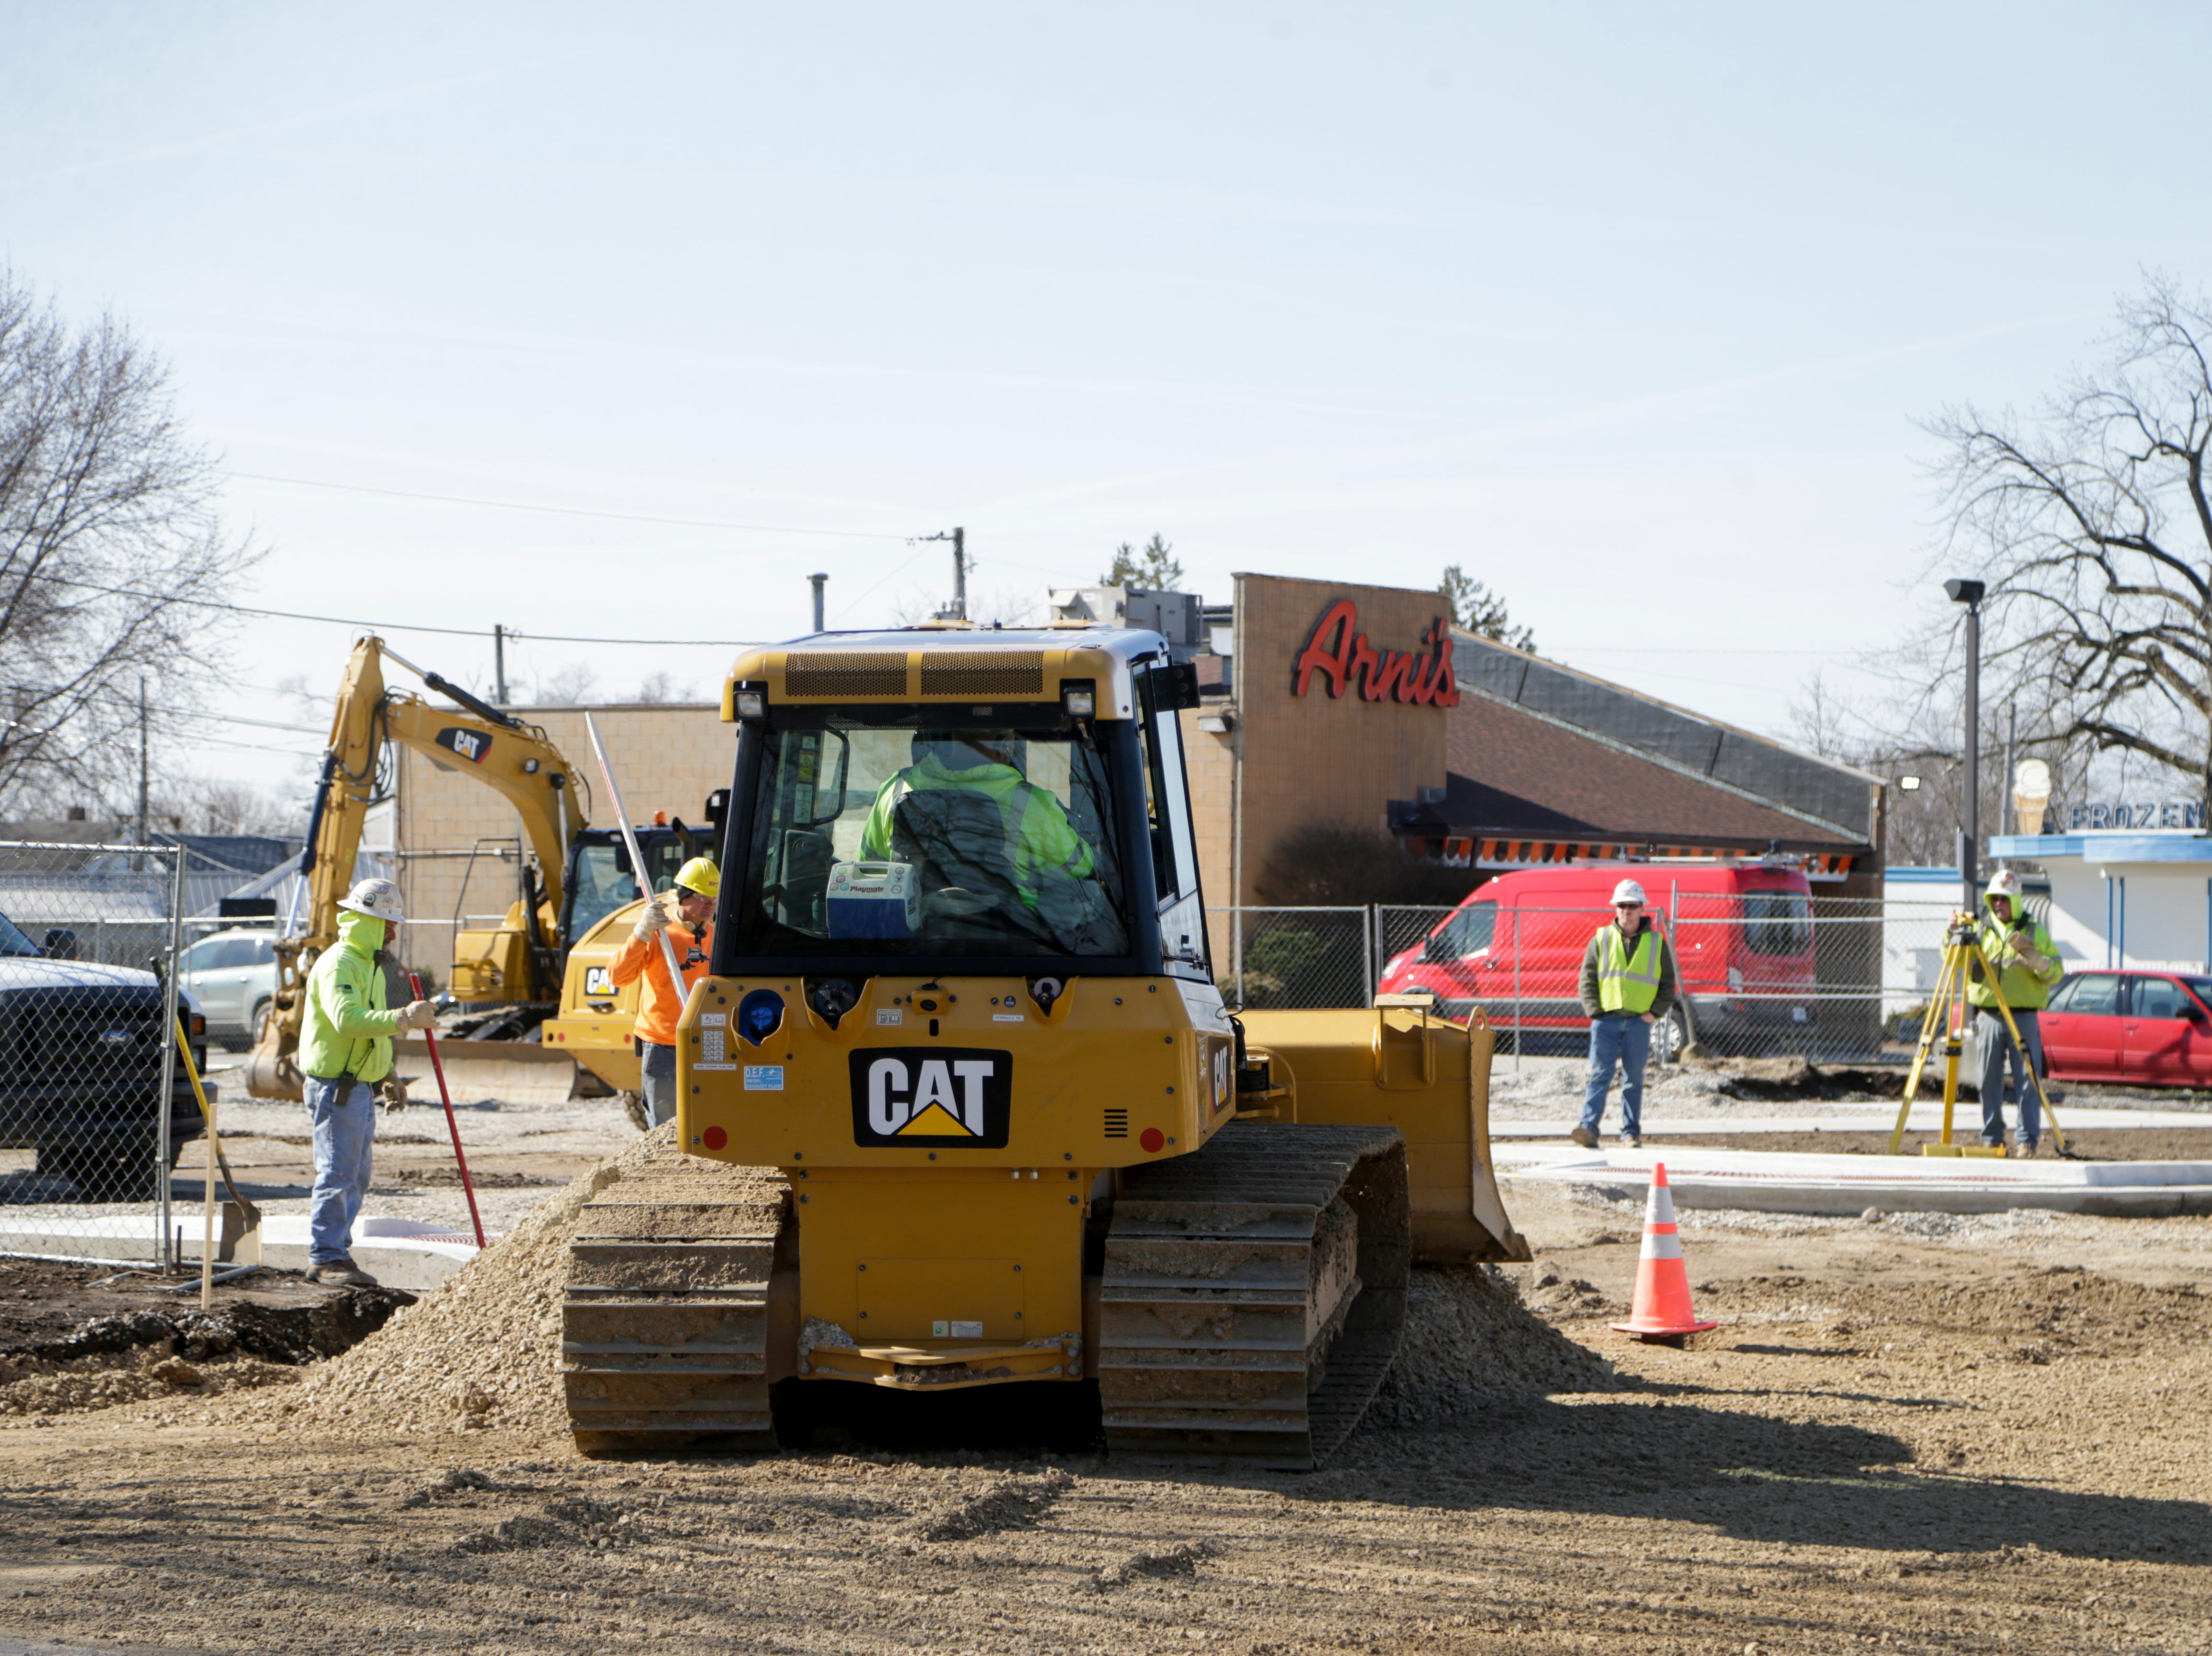 Construction crews begin to dig up the asphalt on Wallace ave. between Main st. and S 24th st., Monday, April 1, 2019, in Lafayette. The stretch of road in front of The Original Frozen Custard and Arni's is set to reopen by the end of the week, baring any weather delays. The intersection of Brice st. and S 24th st. is scheduled to reopen in 3-4 weeks.